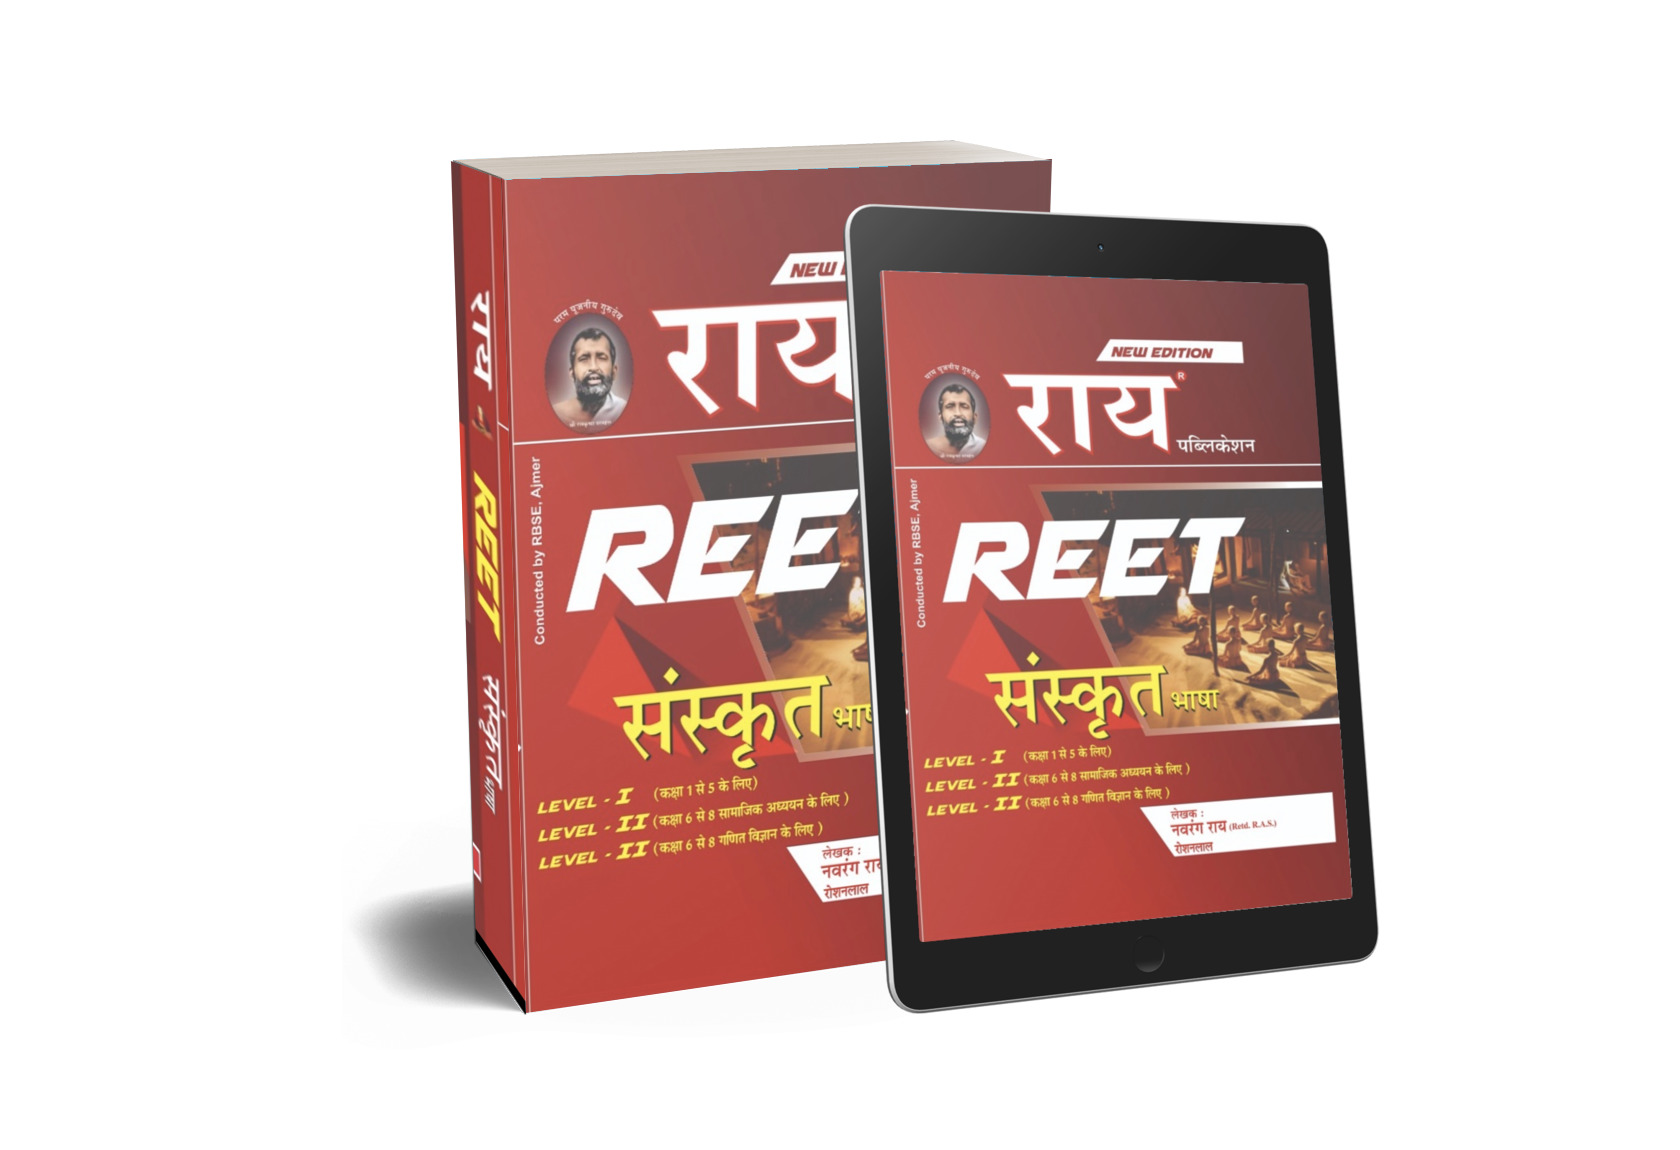 REET Sanskrit Language for Level - 1 and Level 2 ( 2020 Edition )